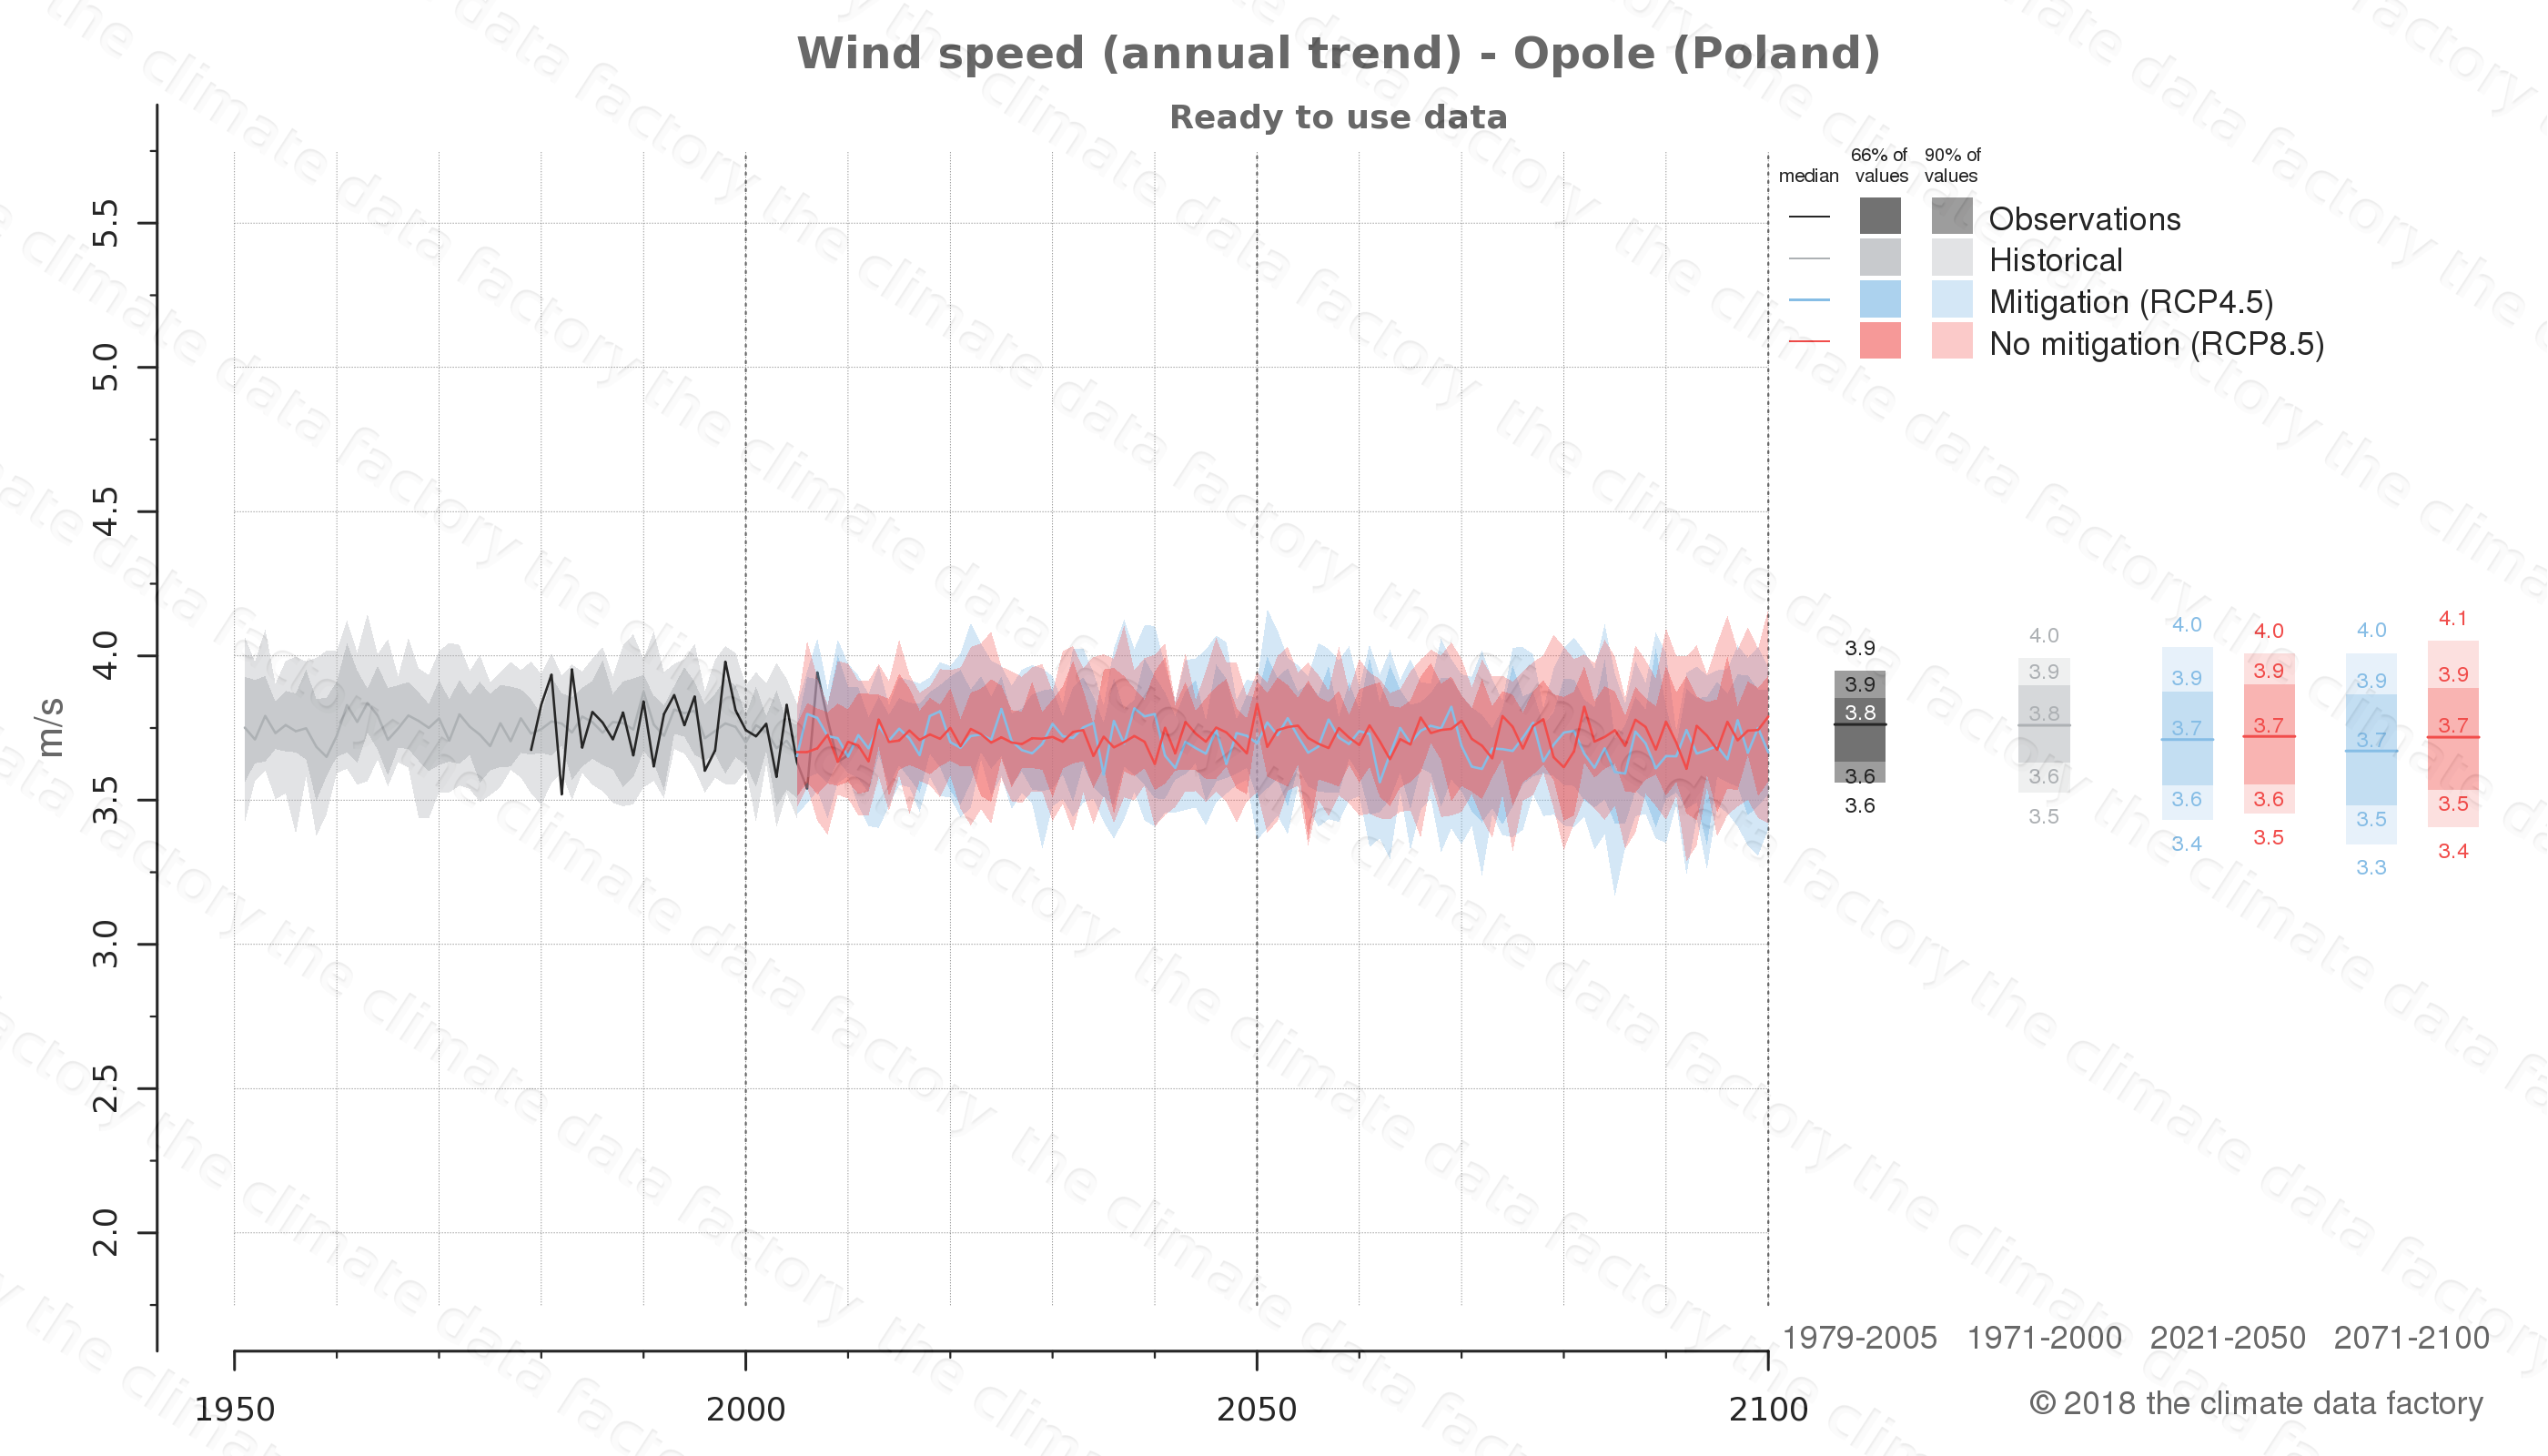 climate change data policy adaptation climate graph city data wind-speed opole poland